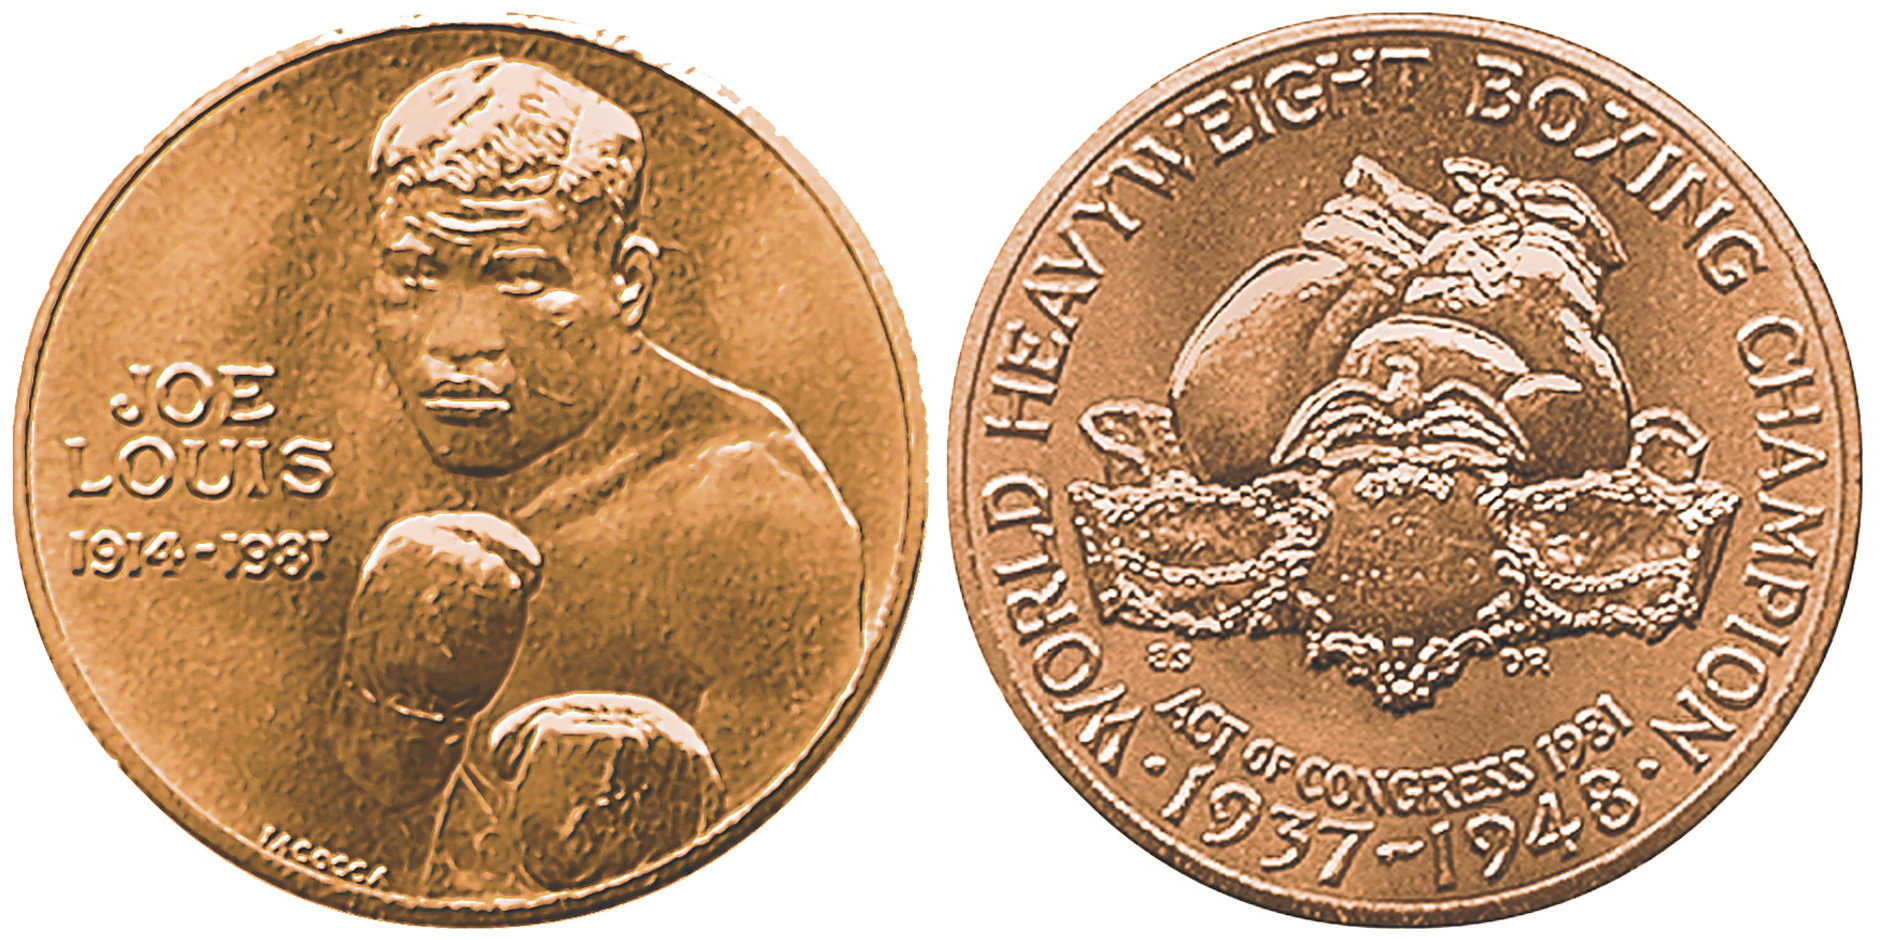 Joe Louis Congressional Gold Medal reverse.jpg